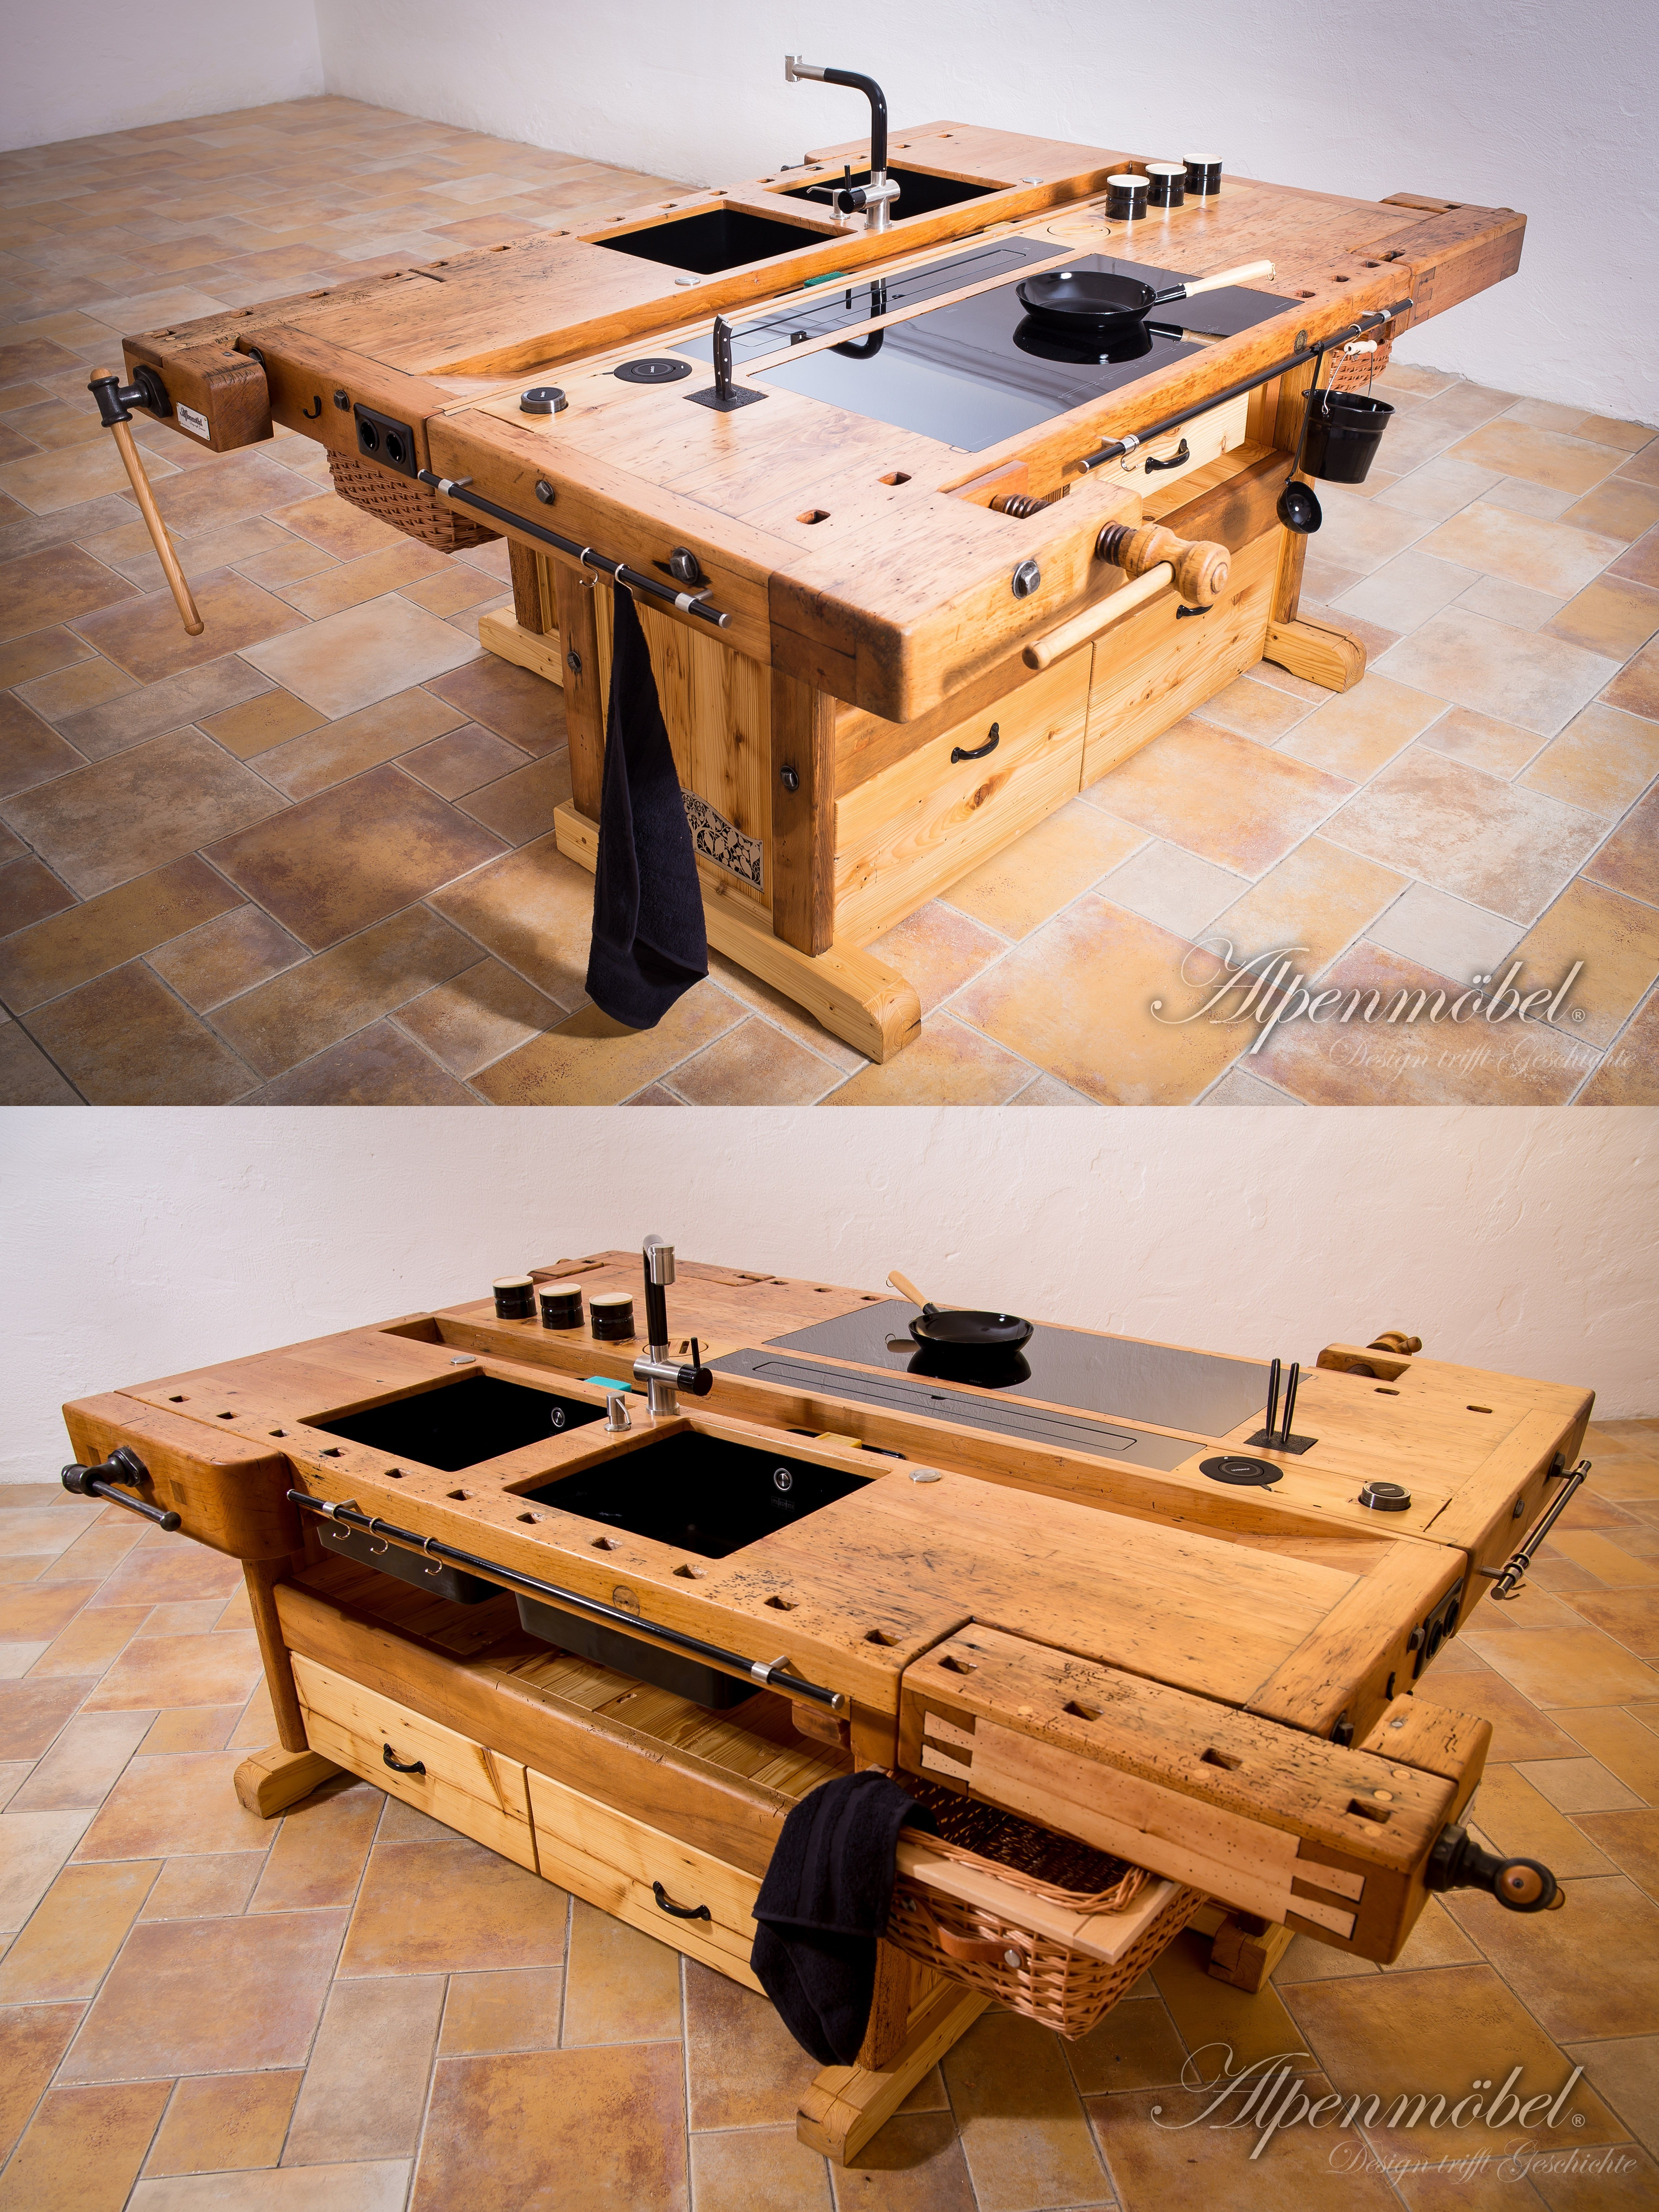 Arranged cooking island with two carpenters workbenches teilige